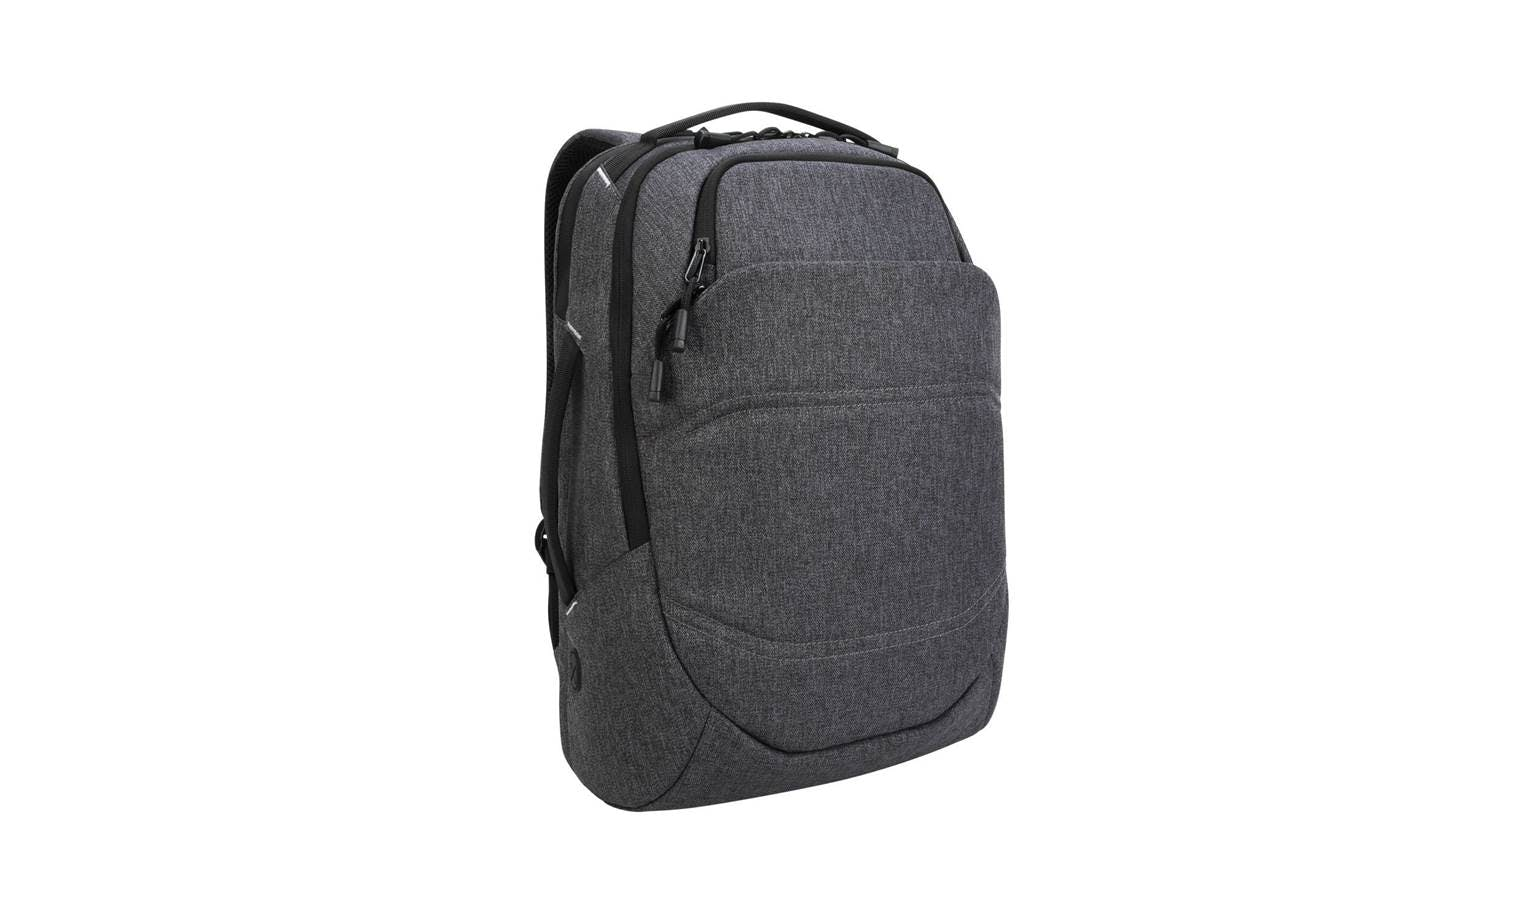 Groove bags reviews